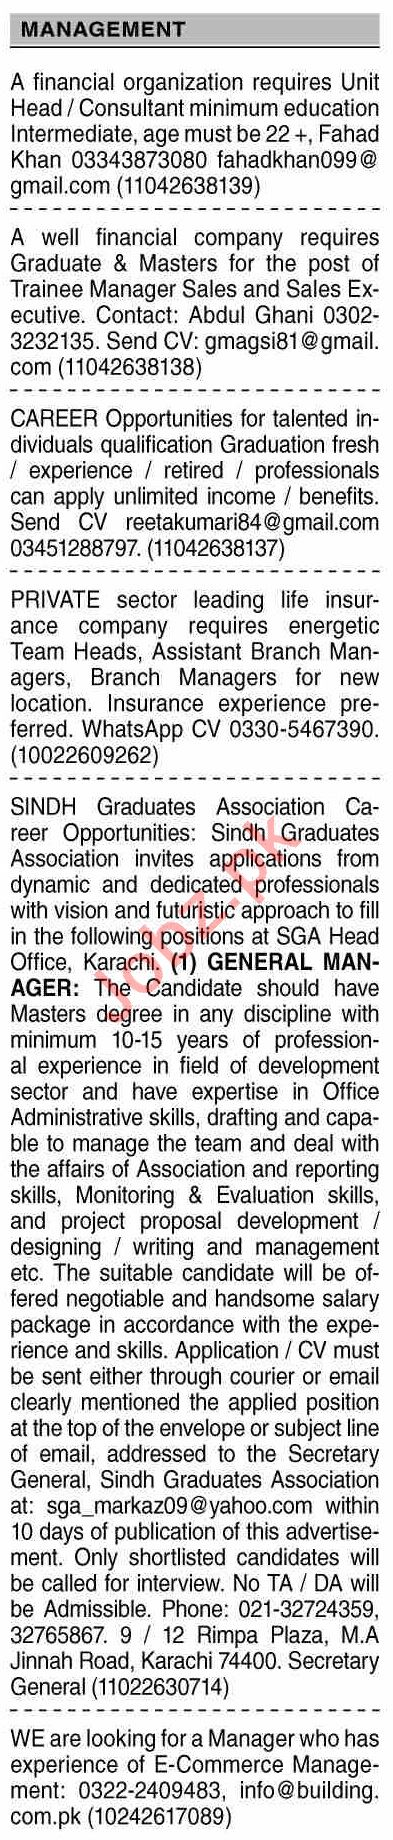 Dawn Sunday Classified Ads 1st August 2021 for Management